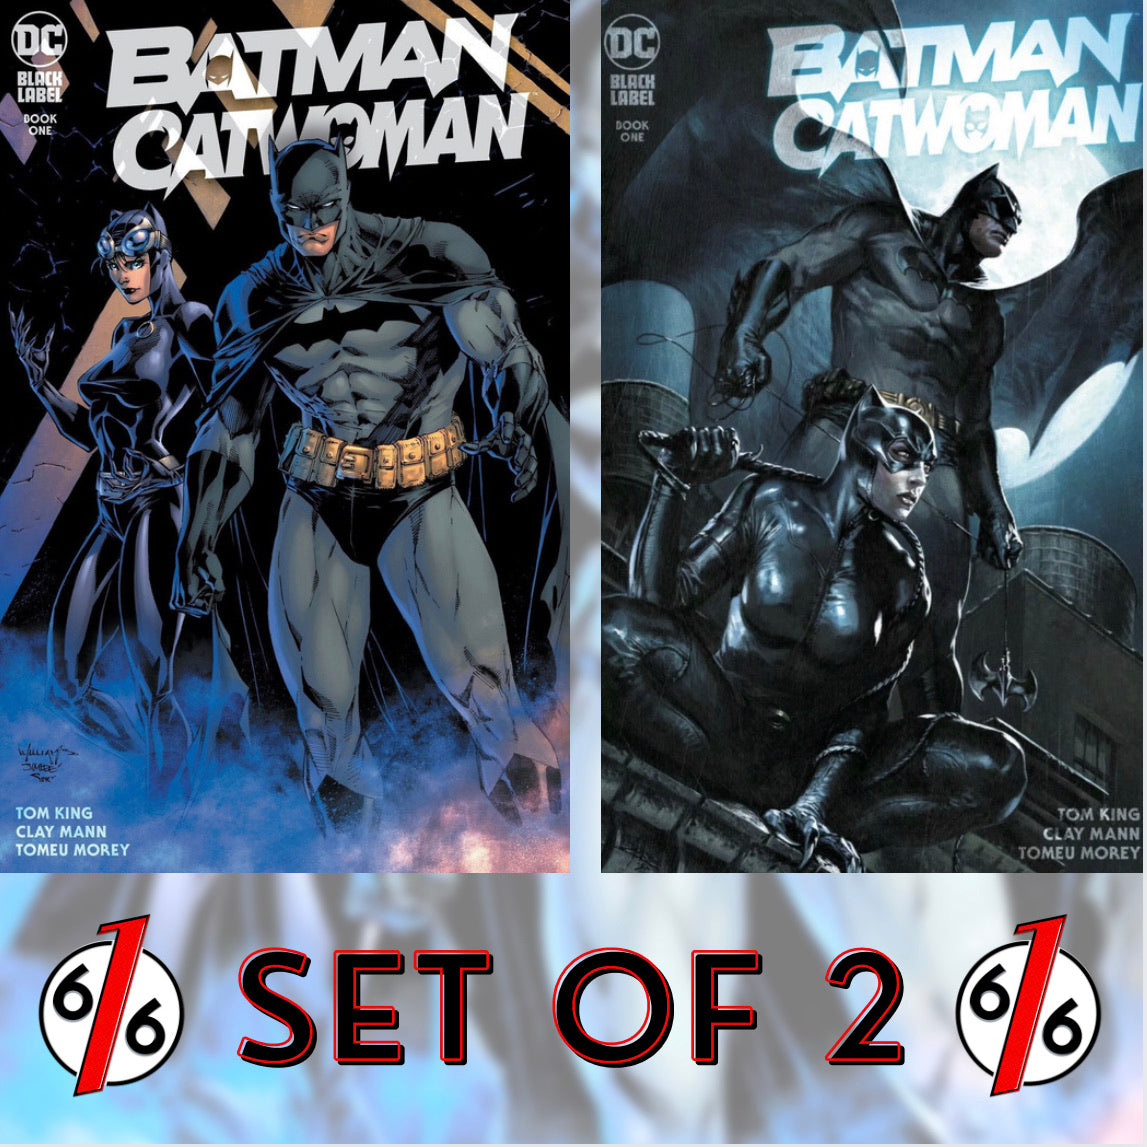 🚨🦇🔥 BATMAN CATWOMAN #1 SET OF 2 Variants Williams & Lee + Dell'Otto LTD 3000